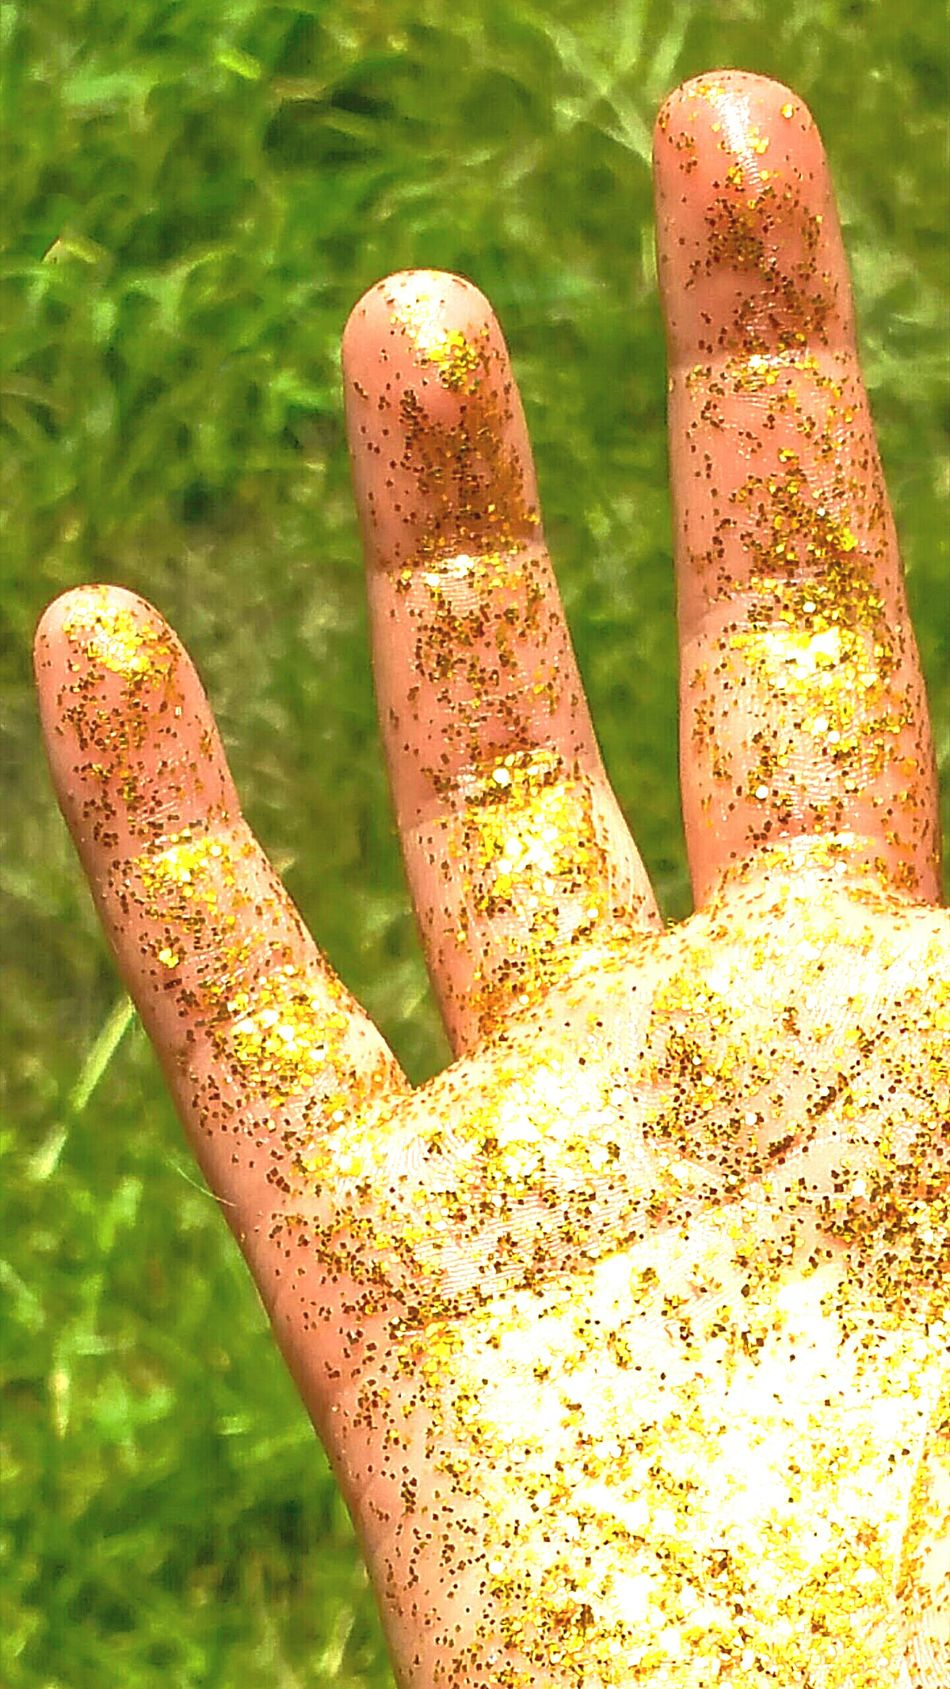 Hand Fingers Gold Golden Bright Colors Glowing Glowing Hands Gold Colored Reflections Sunshine Glittering Shiny Body Part Glitter & Sparkle Glittery Glitter Gold Glitter Grass Outdoors Close-up All That Glitters Rich Tone Beautiful Hands Green Background Grass Background